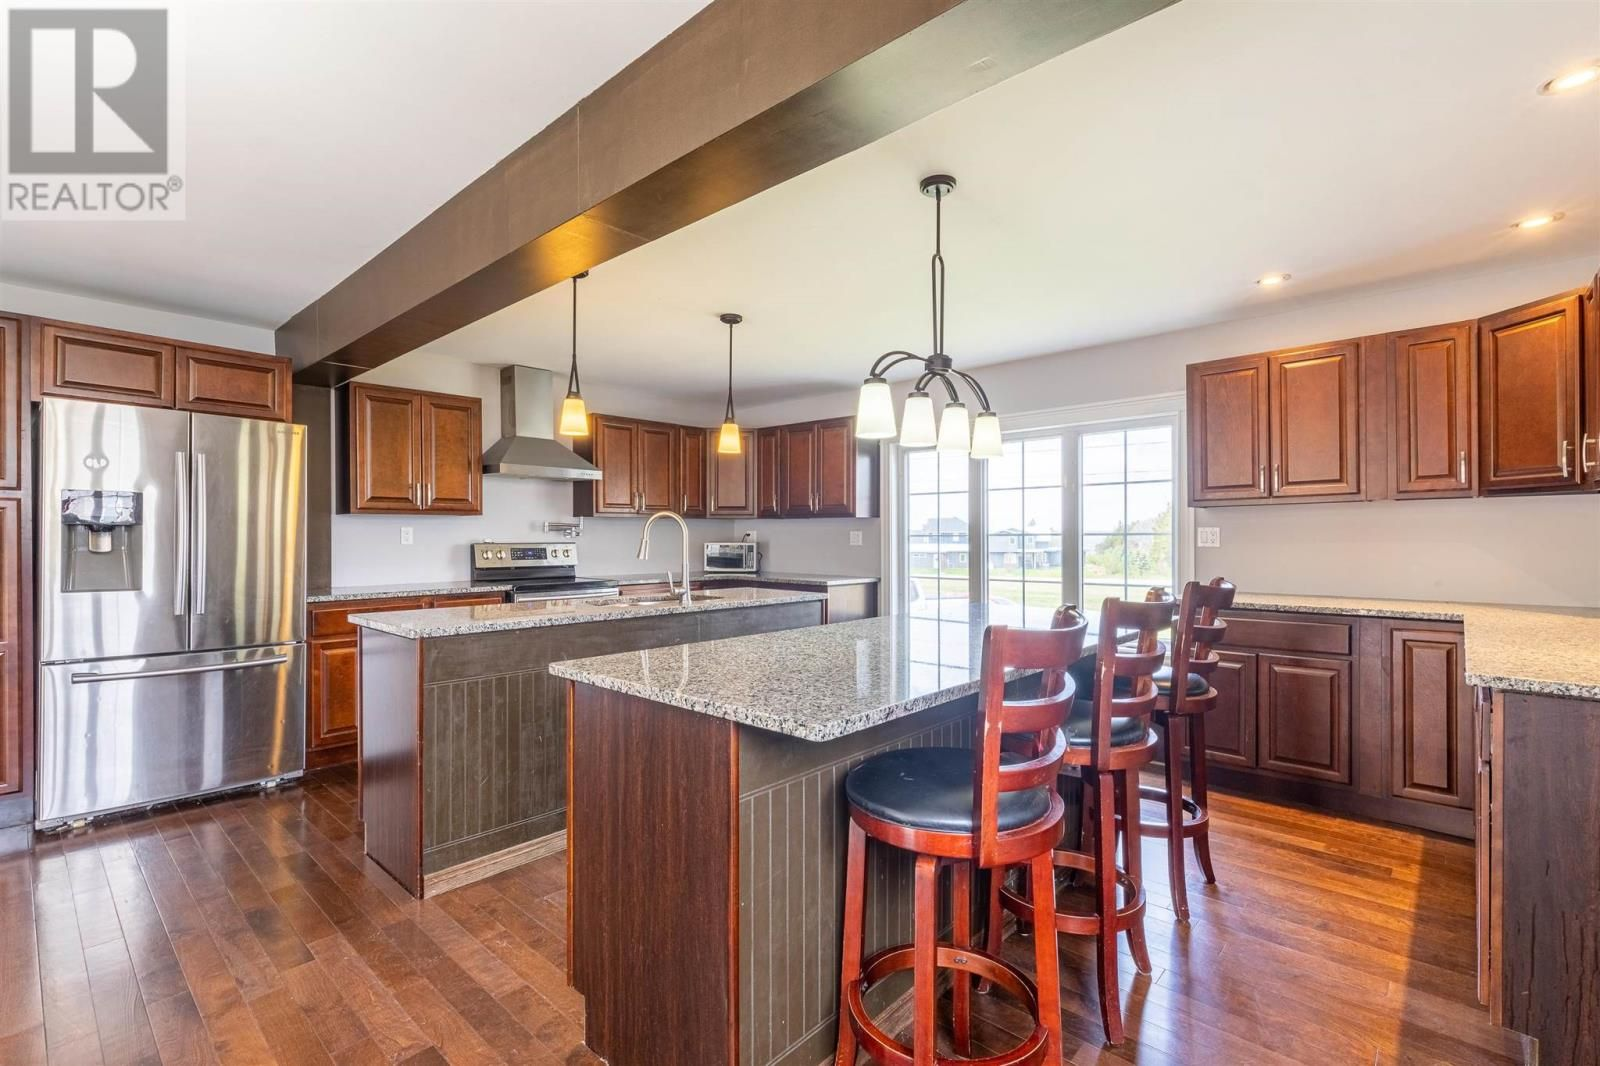 Photo 8: Photos: 5 Cherry Lane in Stratford: House for sale : MLS®# 202119303